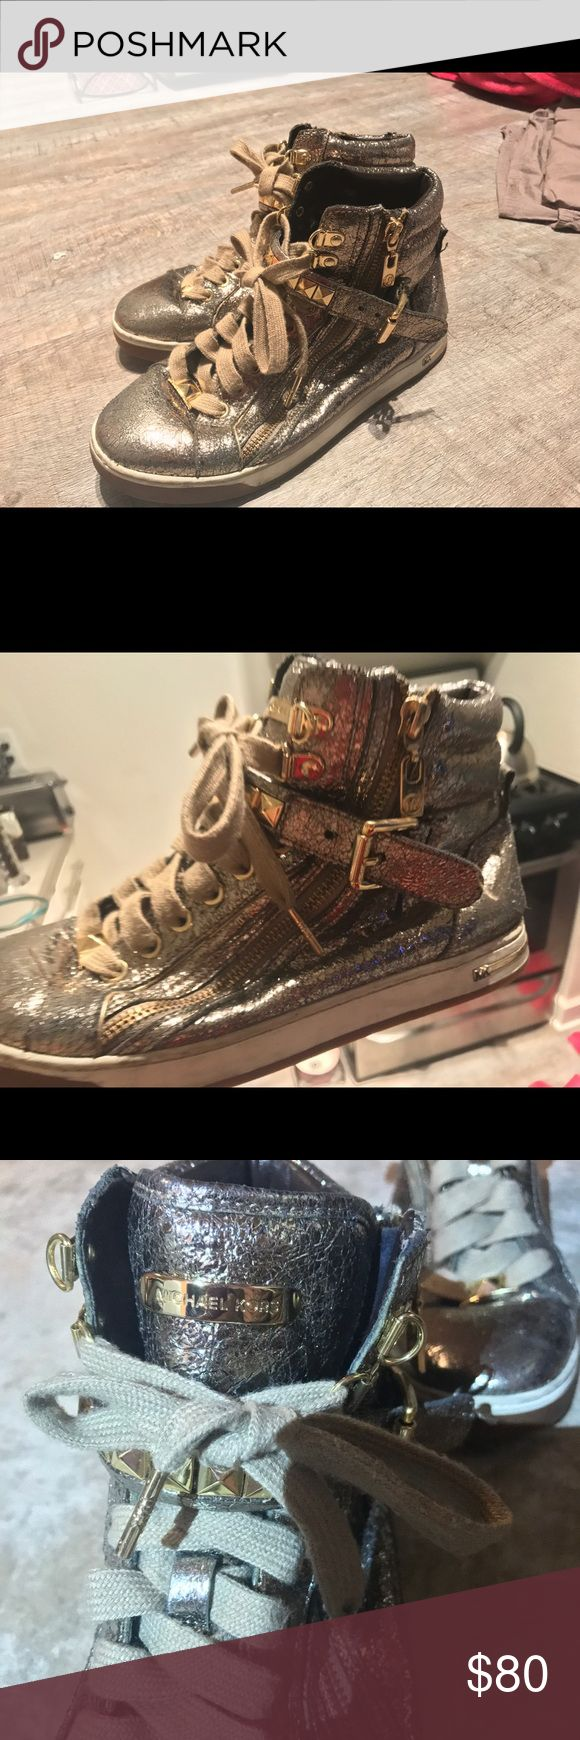 MICHAEL KORS gold high tops Metallic rose gold high top sneakers size 7.5 too small worn once KORS Michael Kors Shoes Sneakers